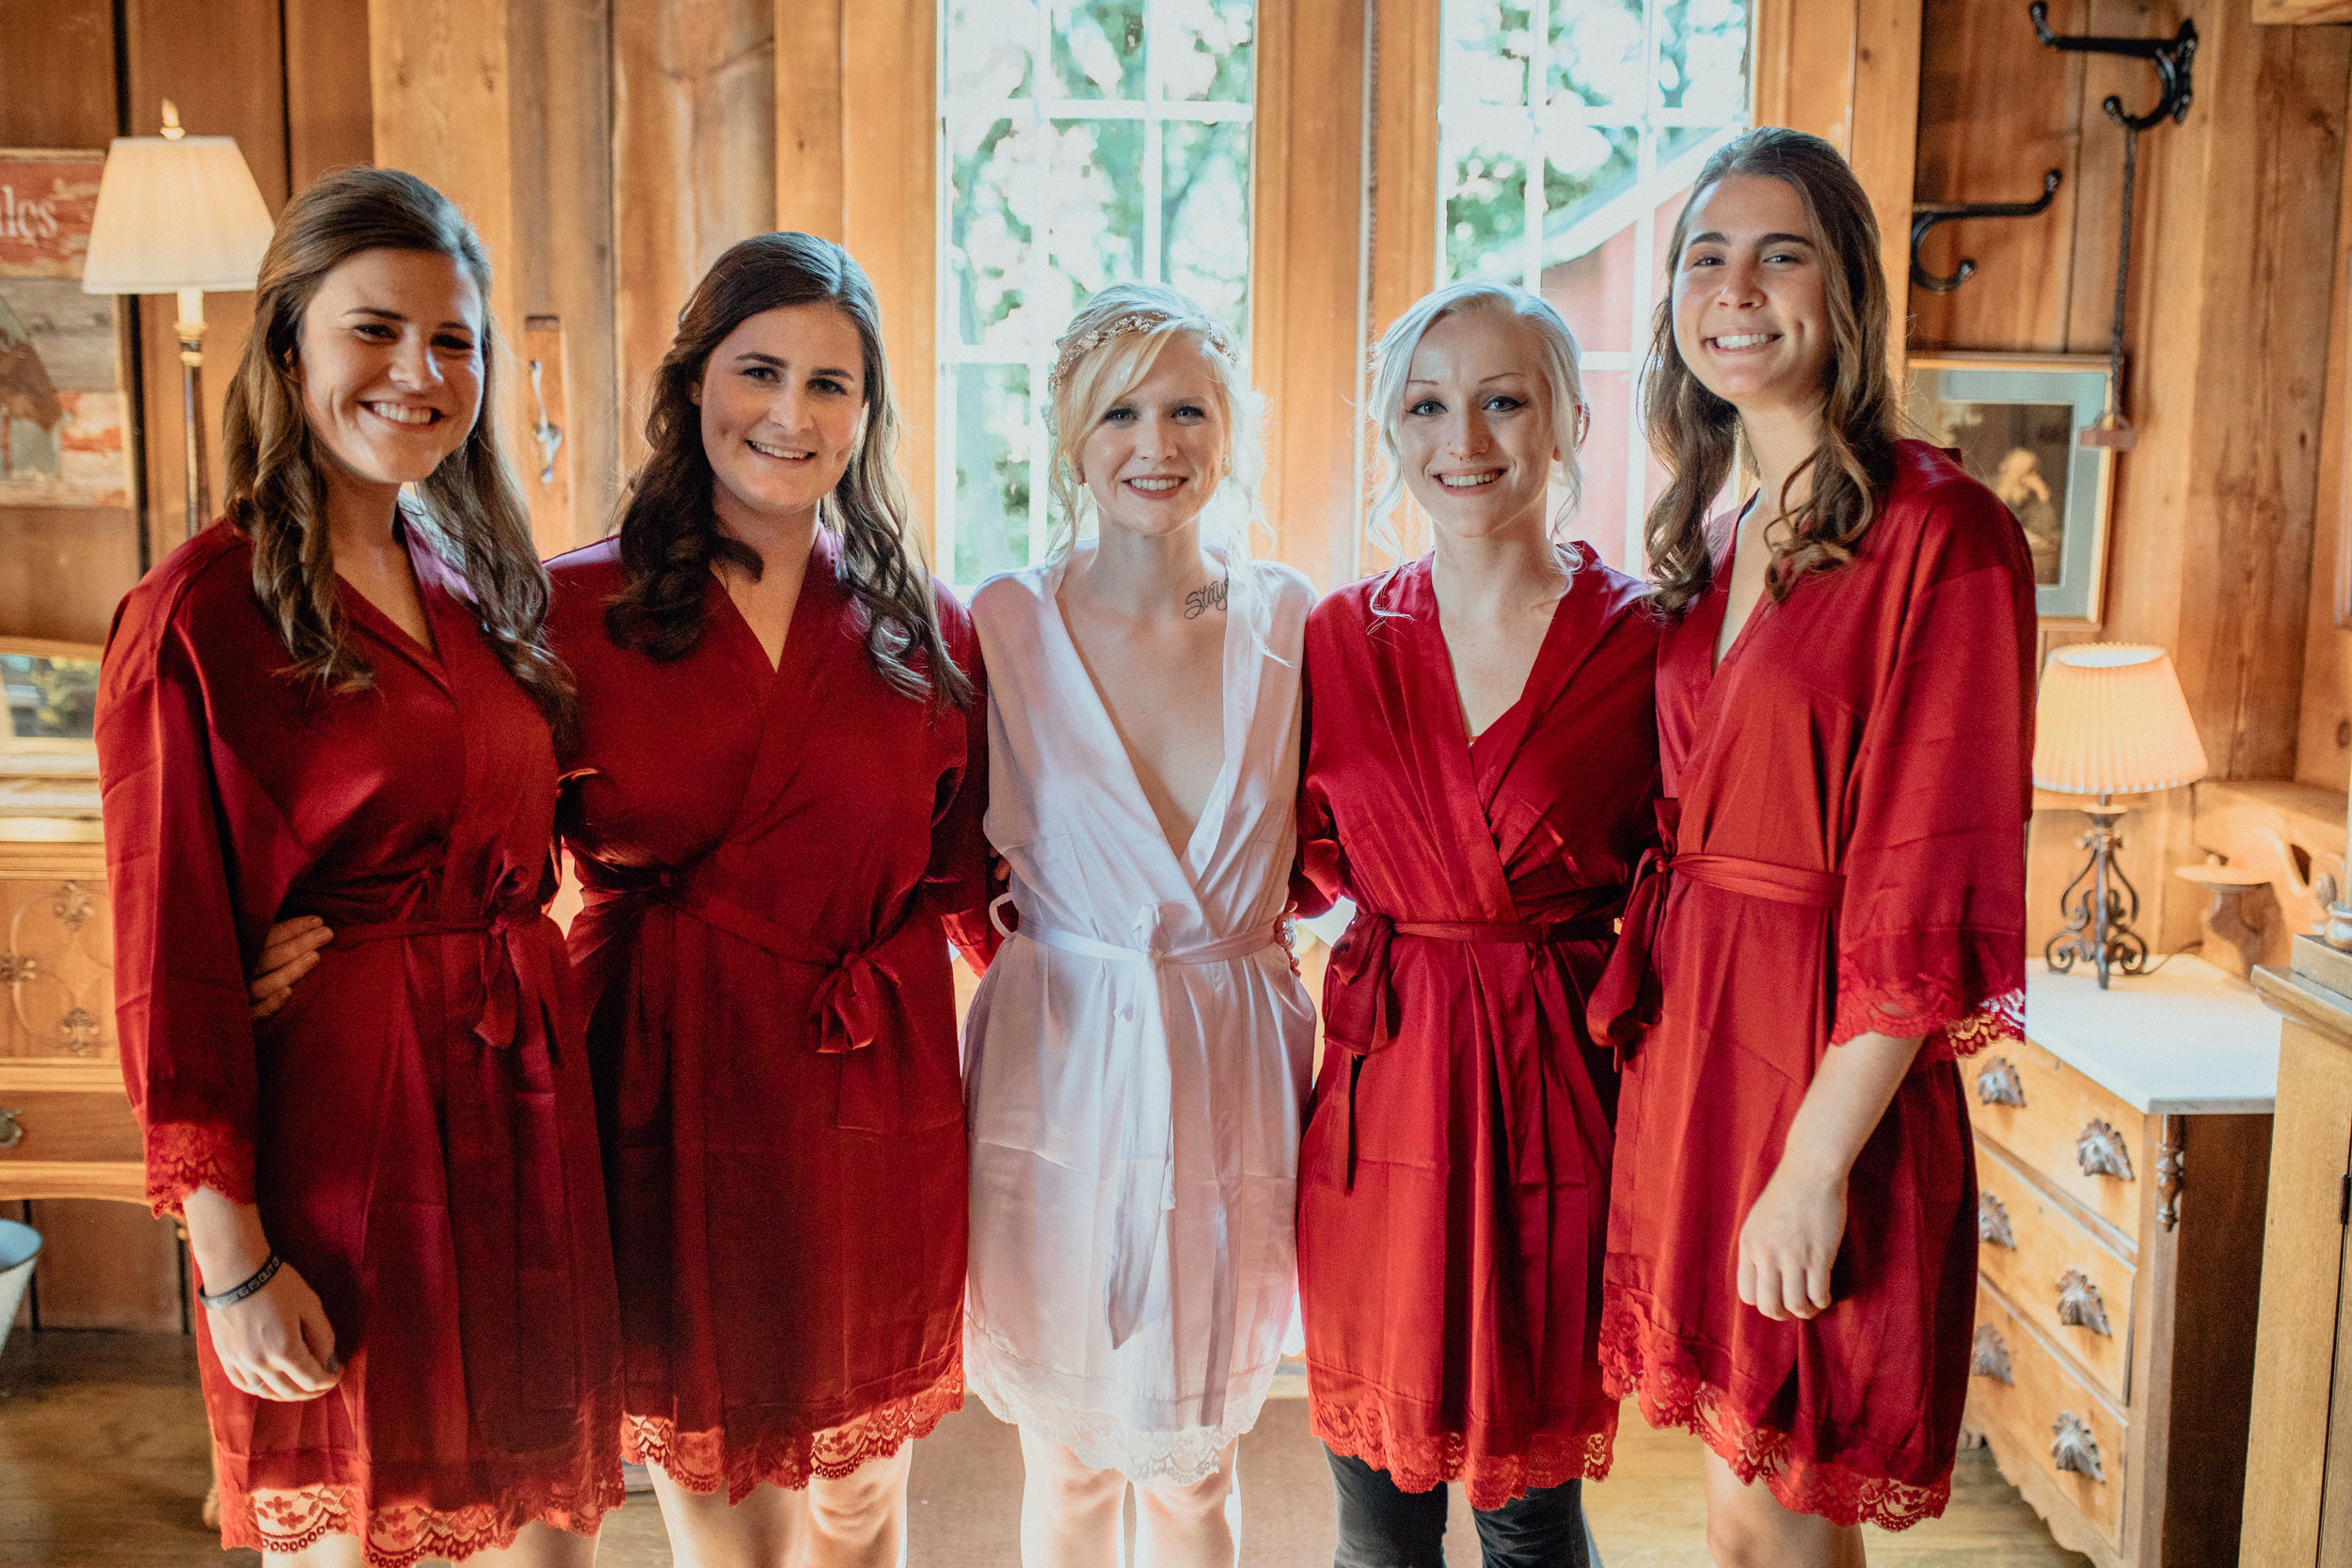 Bridesmaids and bride in robes getting posing